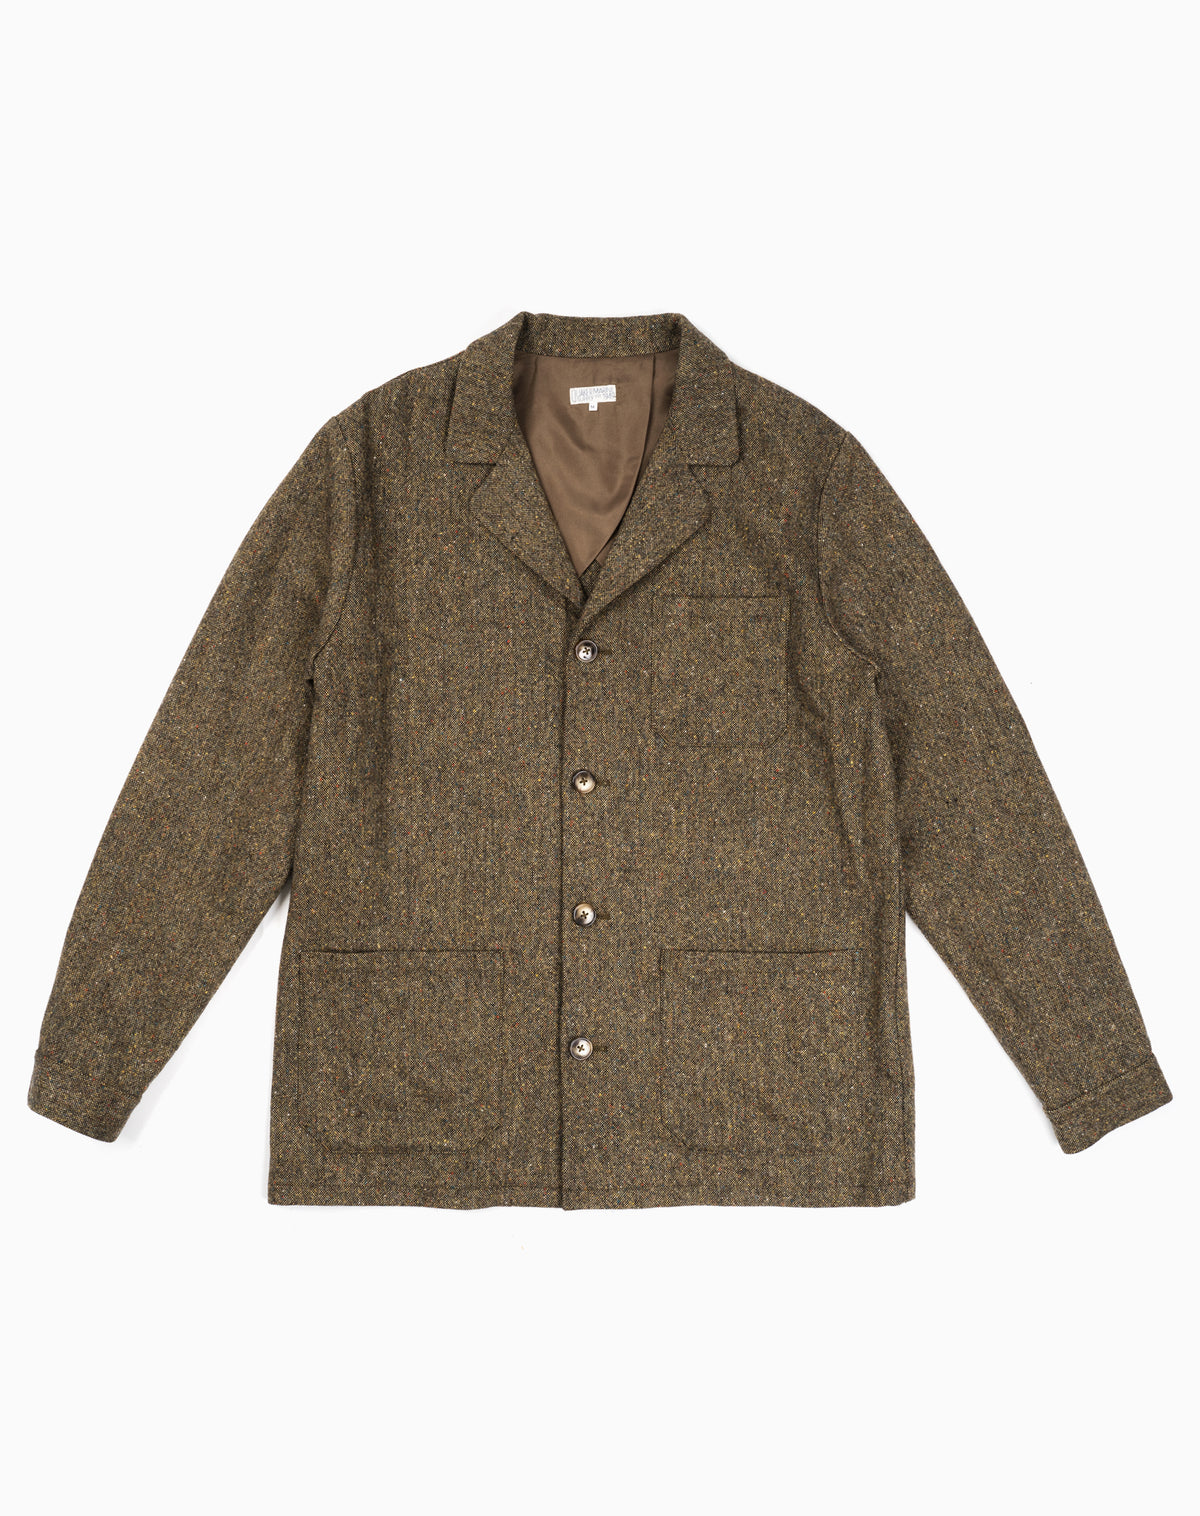 Loafer Jacket in Donegal Tweed